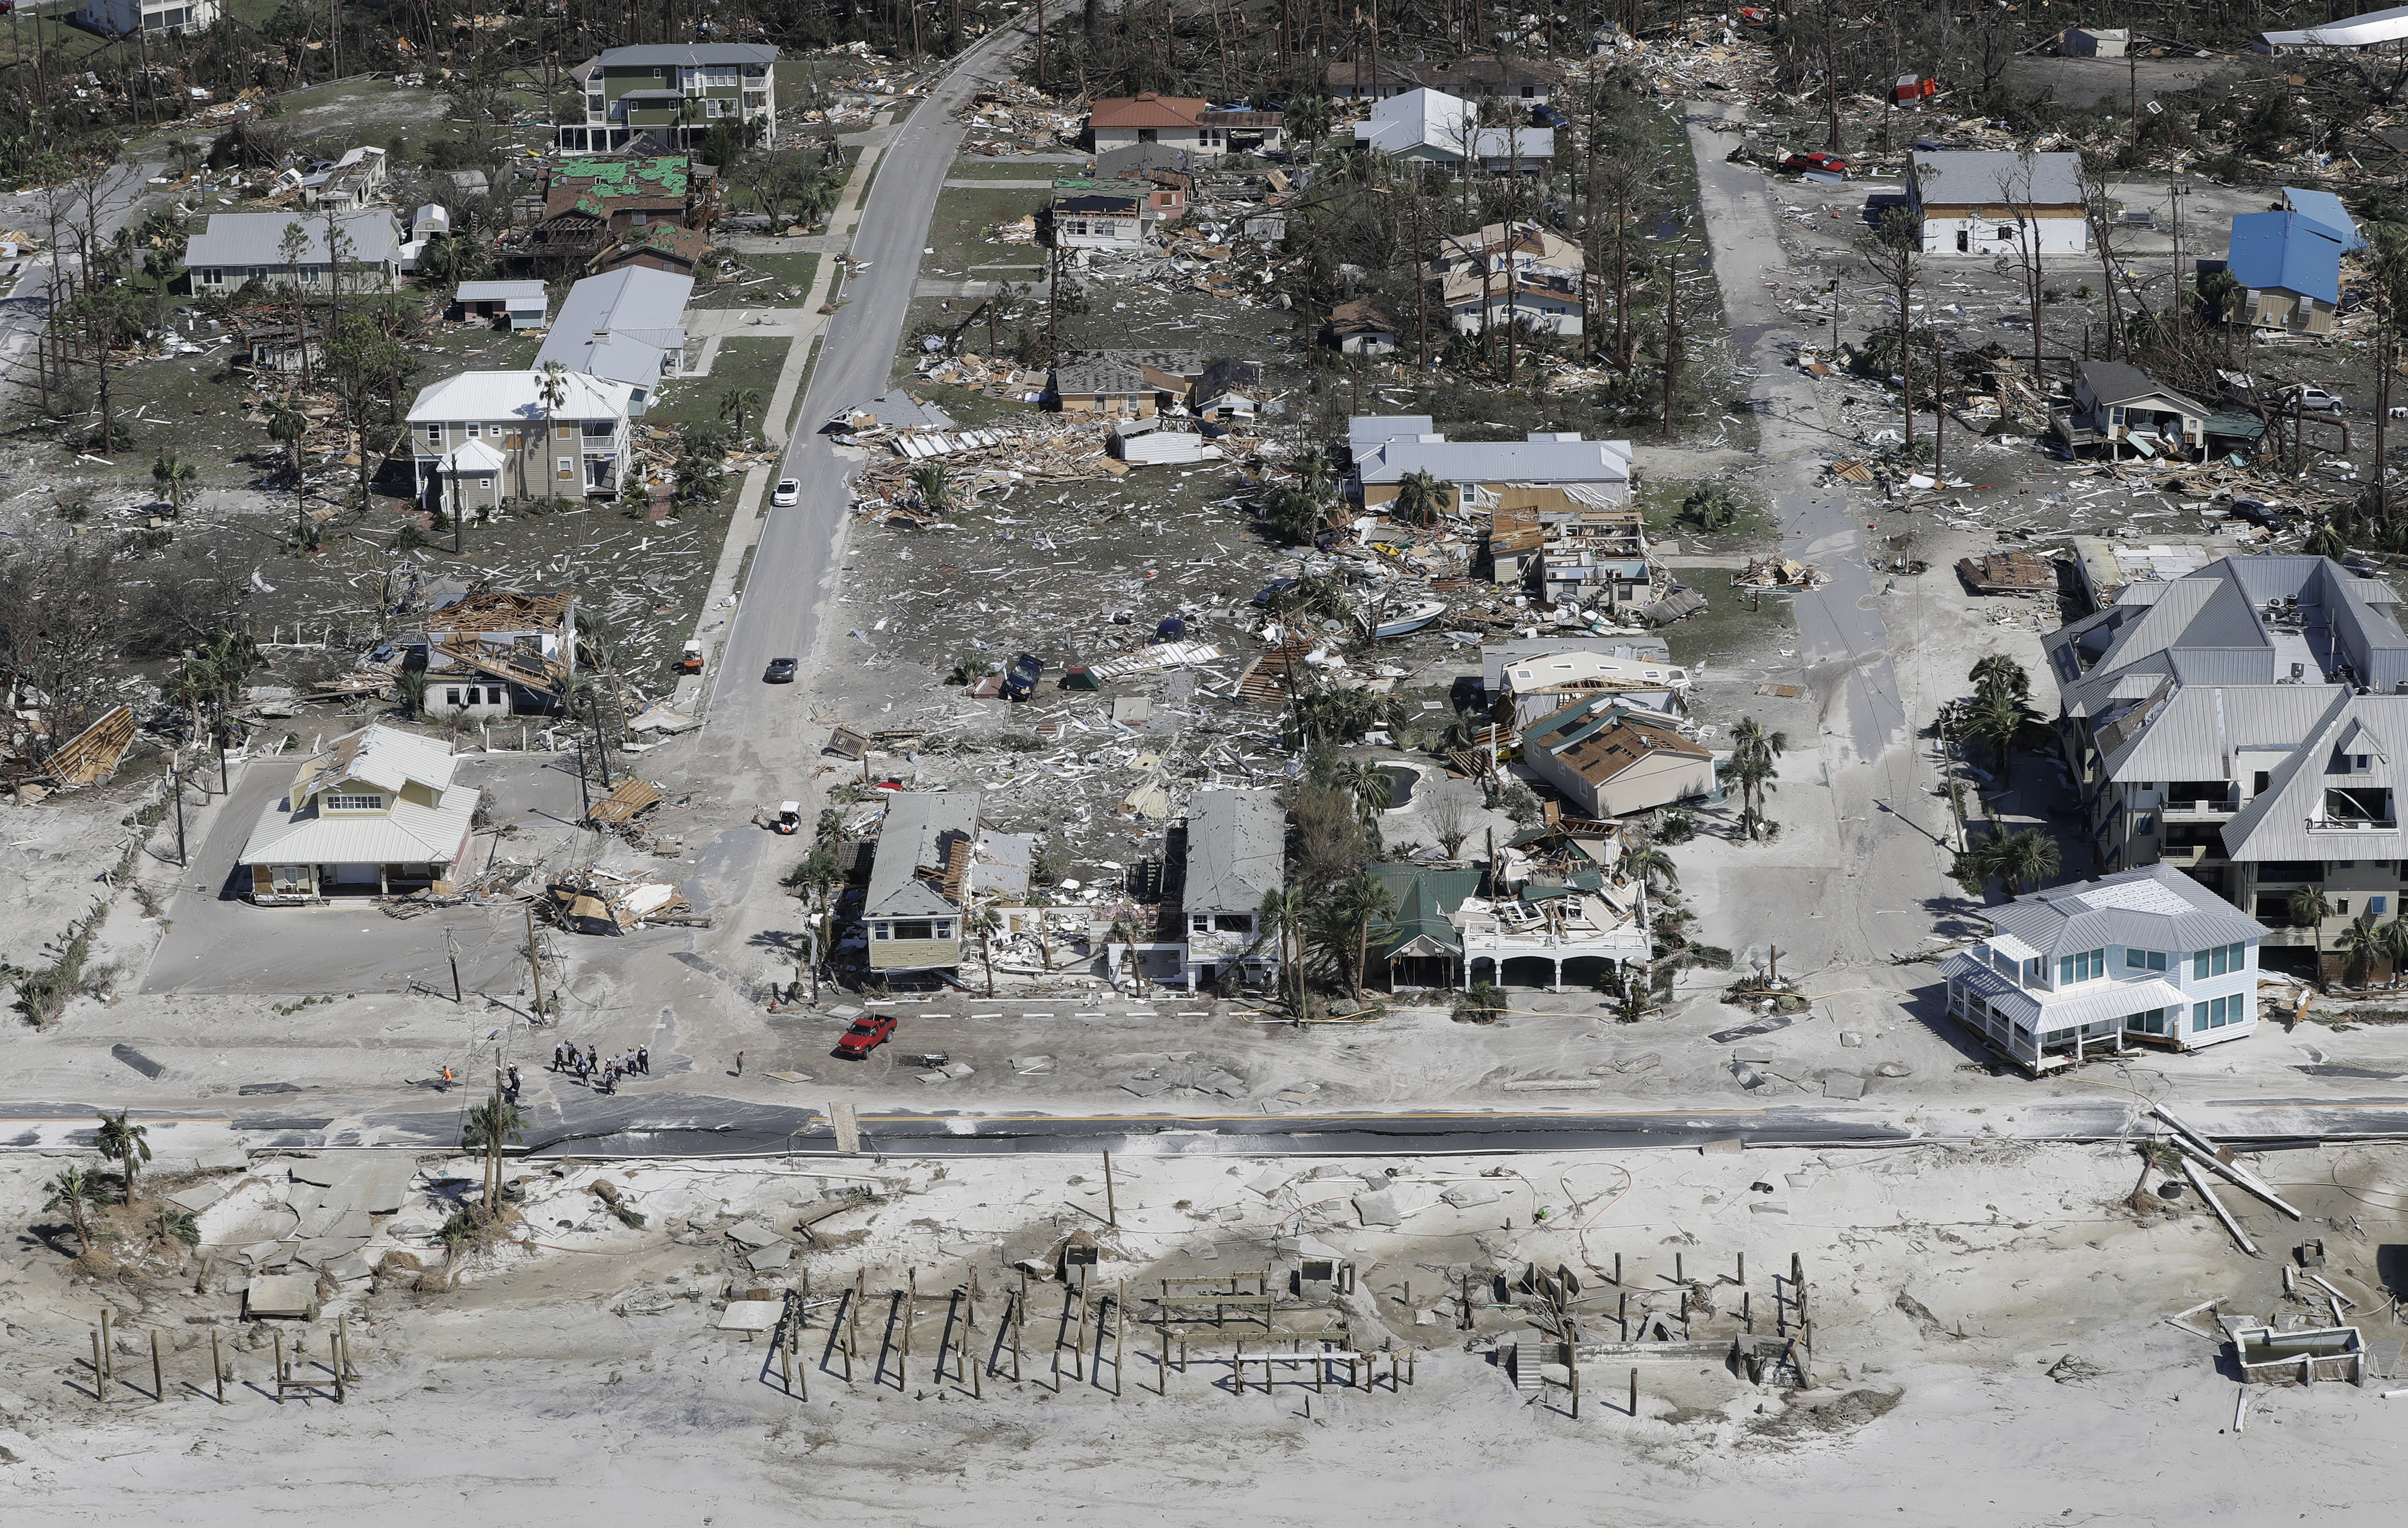 Homes destroyed by Hurricane Michael